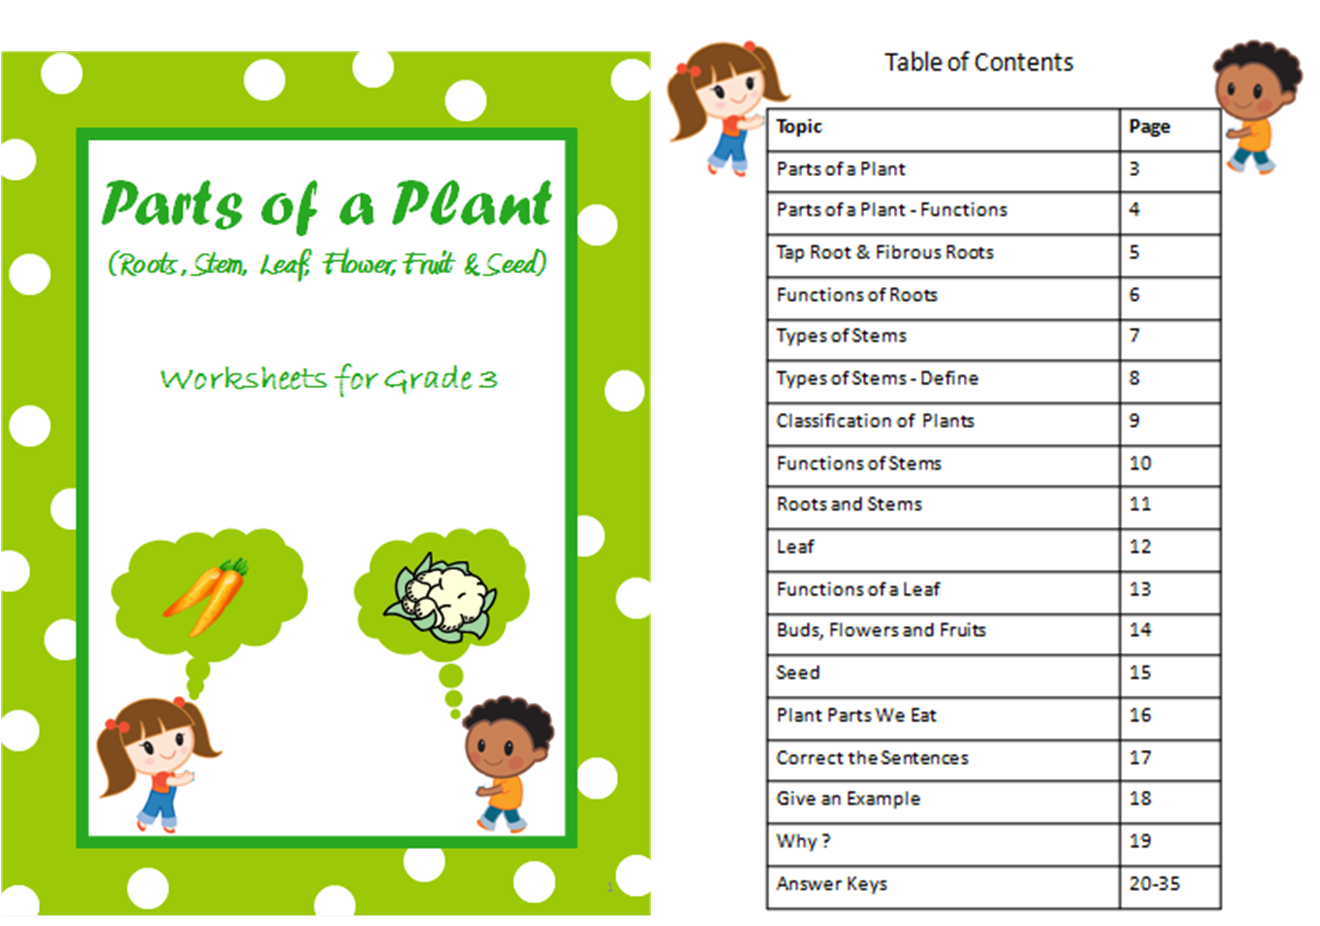 Parts of a Plant - root, stem , leaf, flower, fruit, seed - worksheets